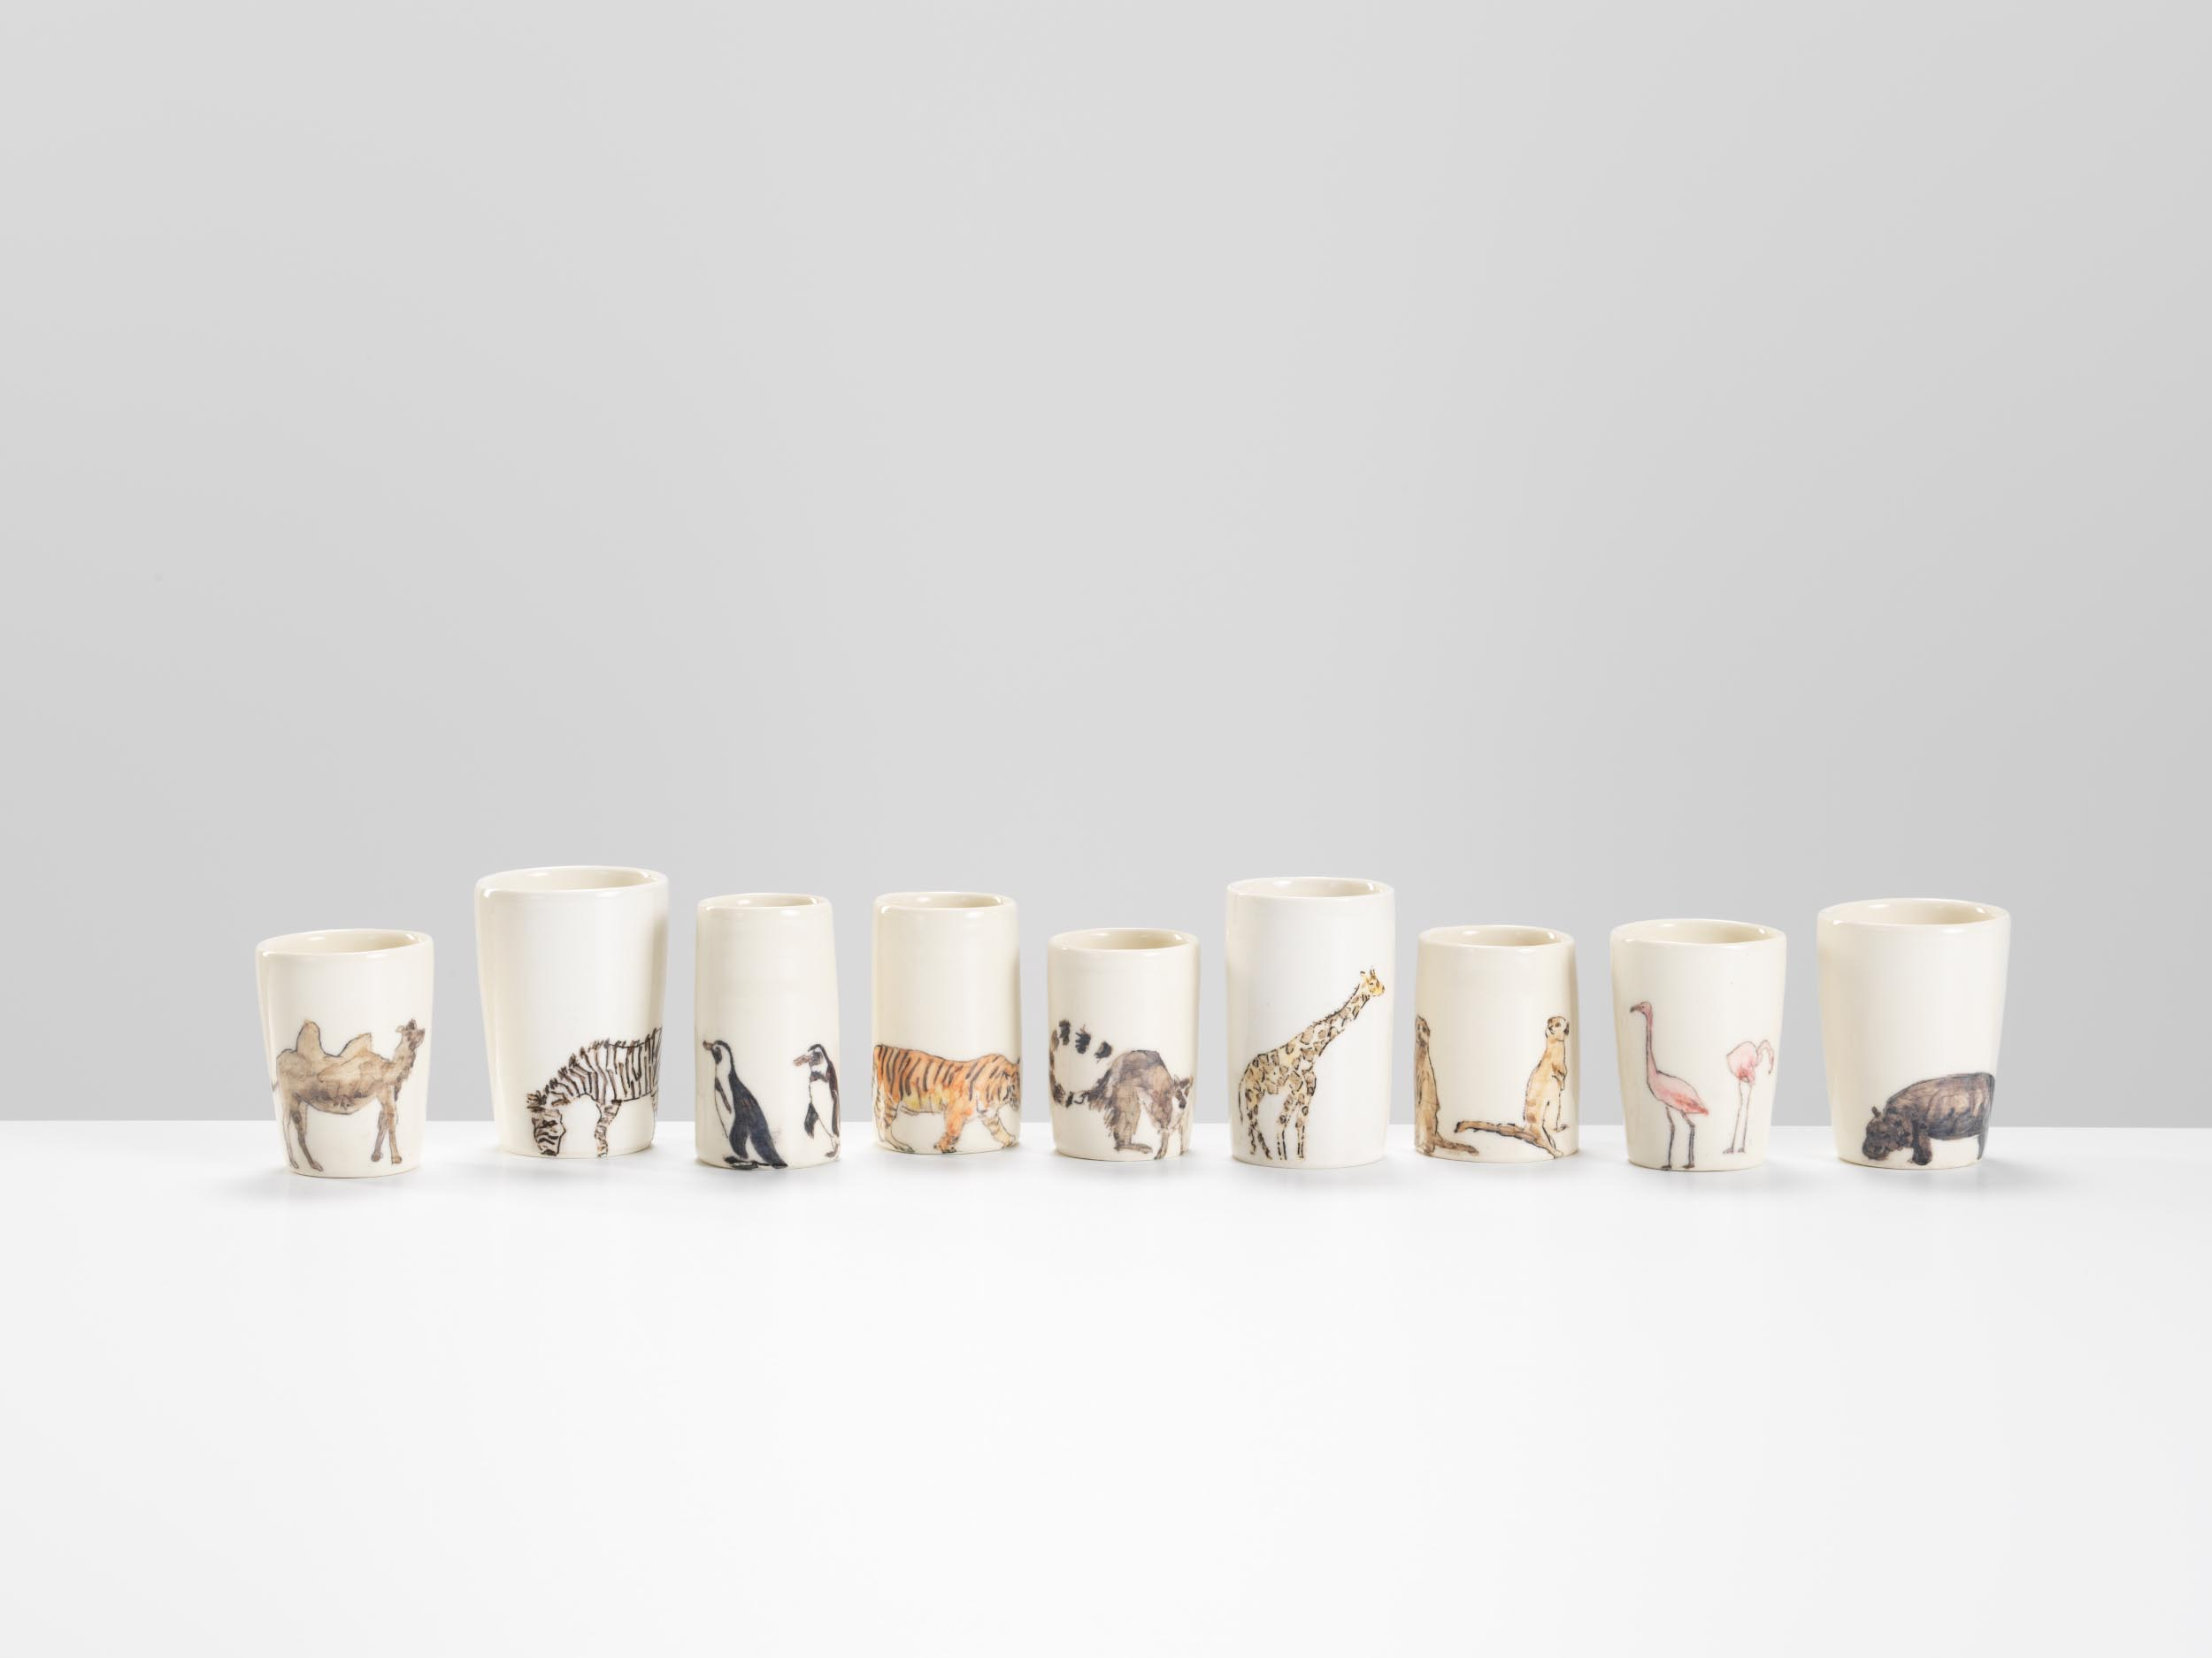 Creatures at London Zoo, 2018, wheel-thrown and hand-painted porcelain, 10-15cm height (various pieces)